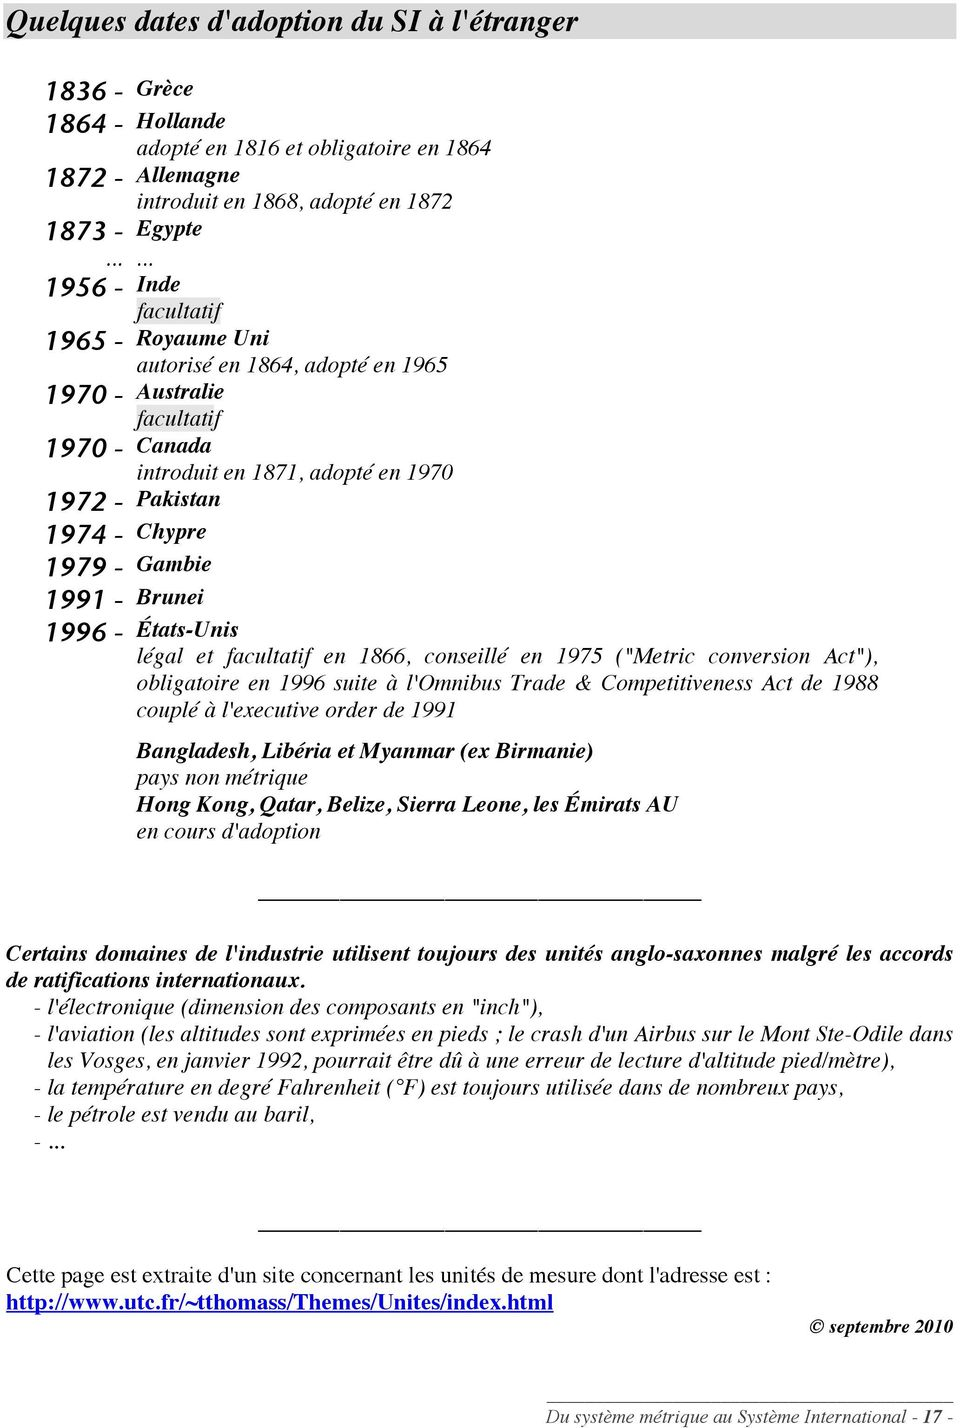 "États-Unis légal et facultatif en 1866, conseillé en 1975 (""Metric conversion Act""), obligatoire en 1996 suite à l'omnibus Trade & Competitiveness Act de 1988 couplé à l'executive order de 1991"